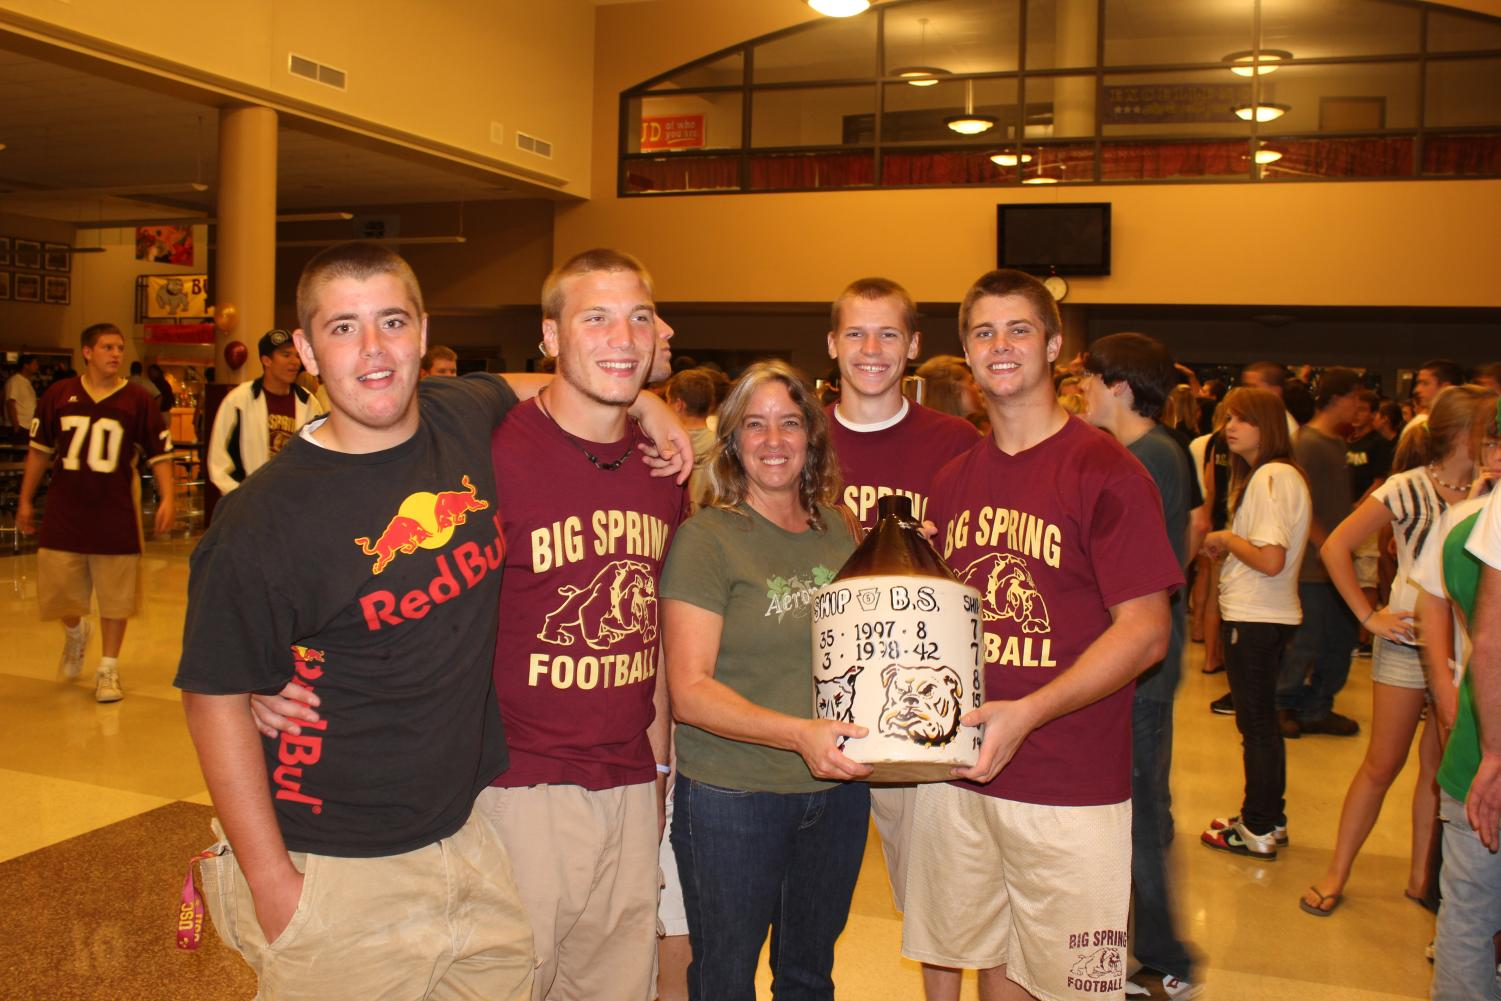 Members of the 2010 football team celebrate with the Little Brown Jug after their big win over Shippensburg. This years game is to be held on November 3, 2017 at Shippensburg.